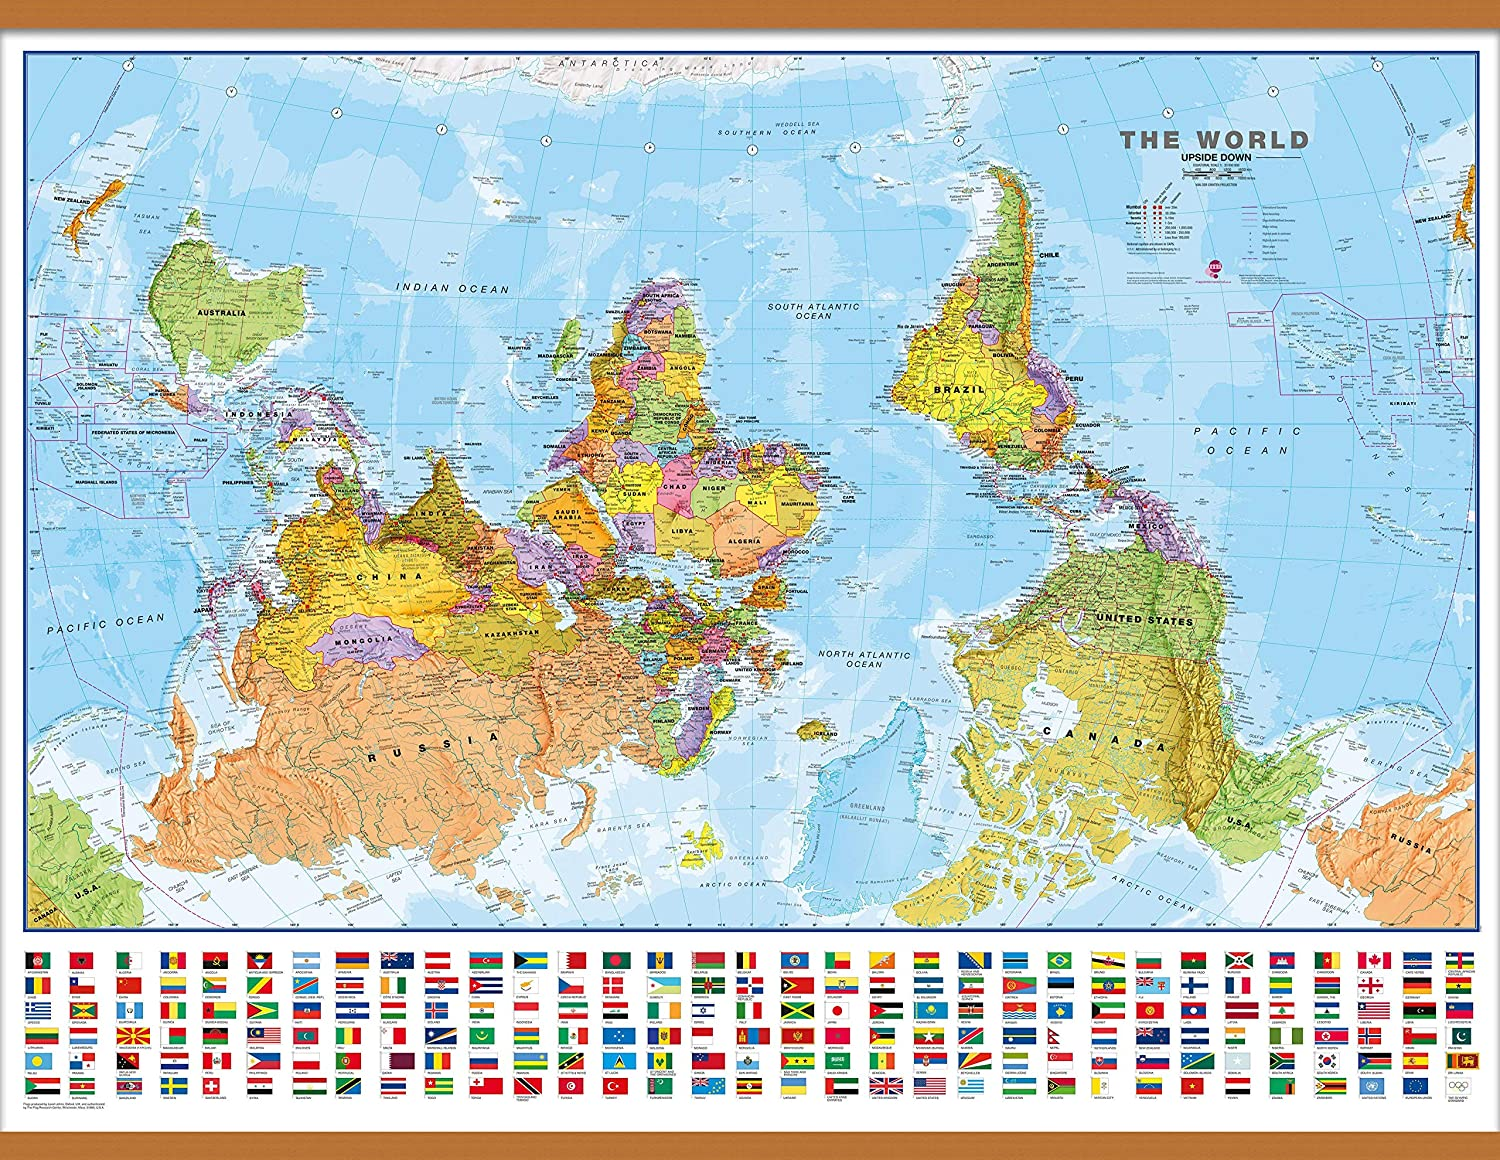 Upside Down Map Of The World Amazon.: Maps International Large Upside Down Political World